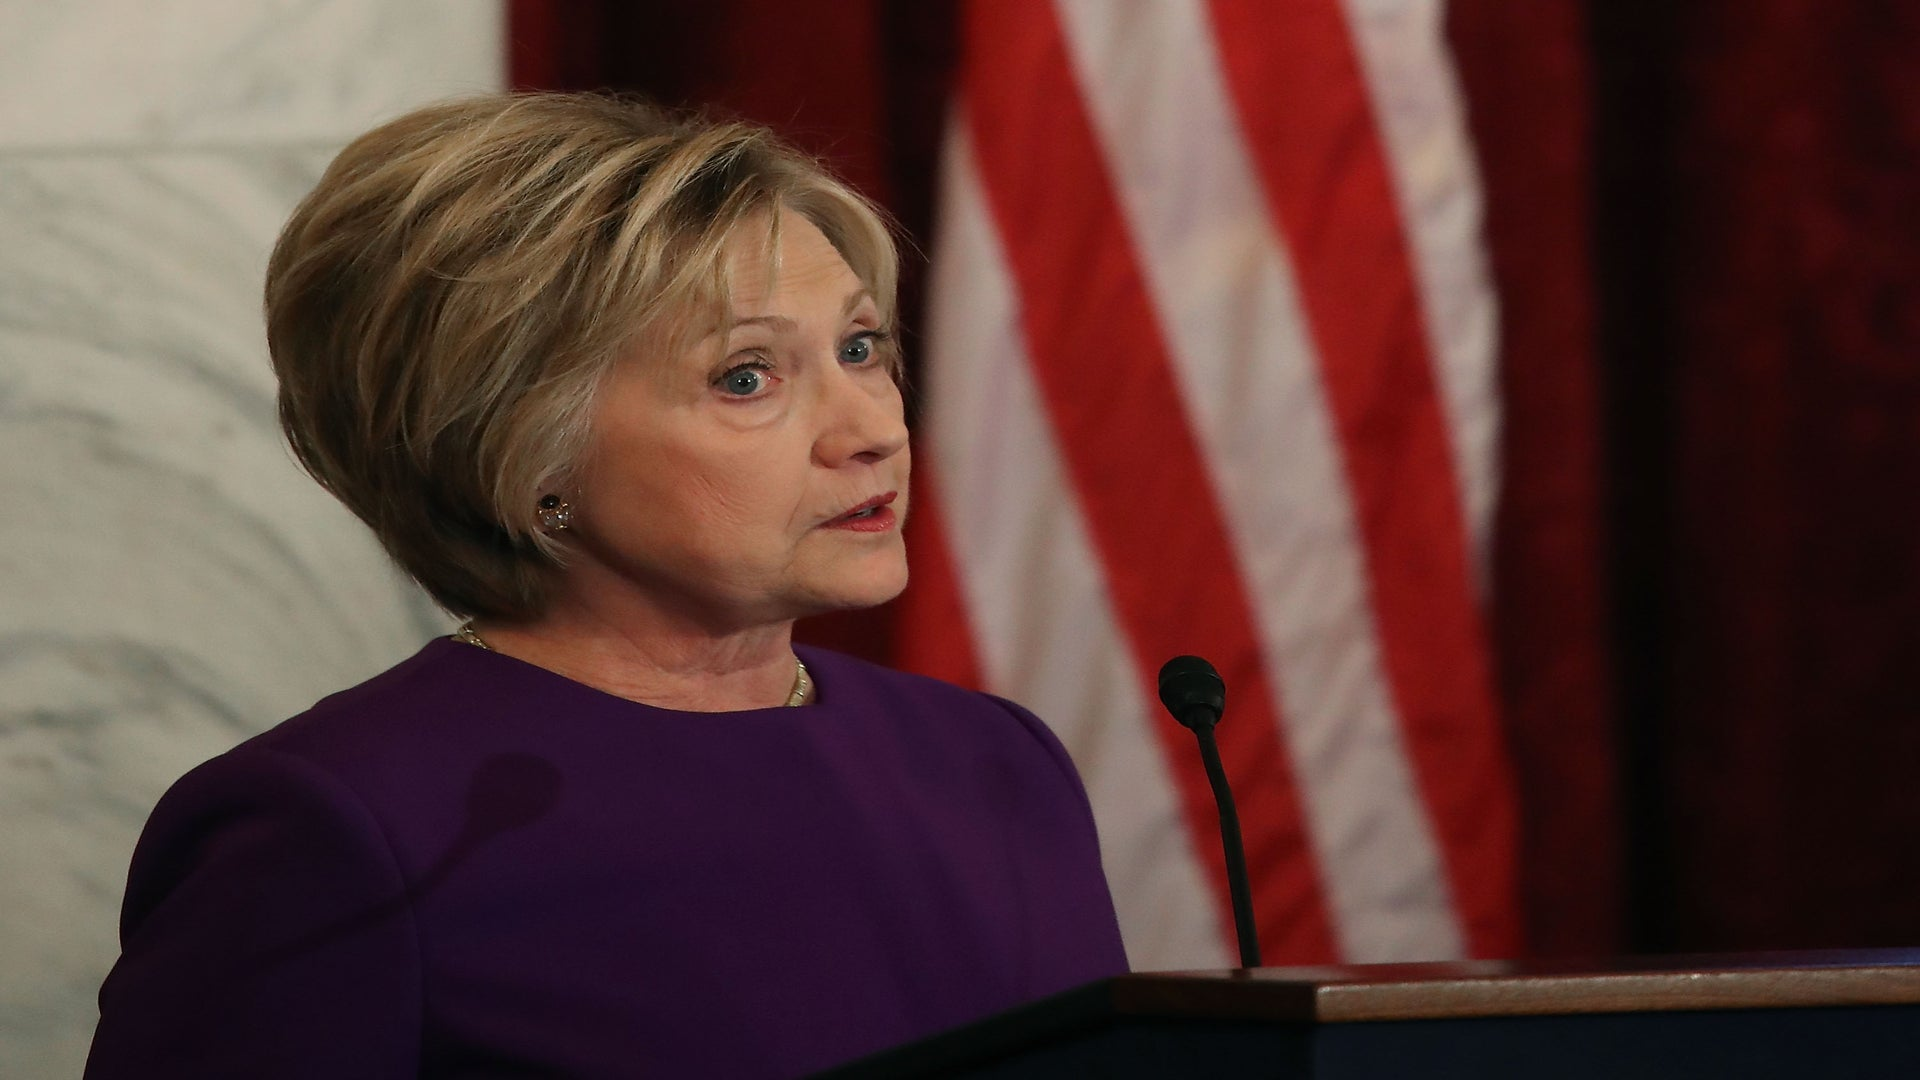 'Lives Are at Risk.' Hillary Clinton Warns Against Fake News